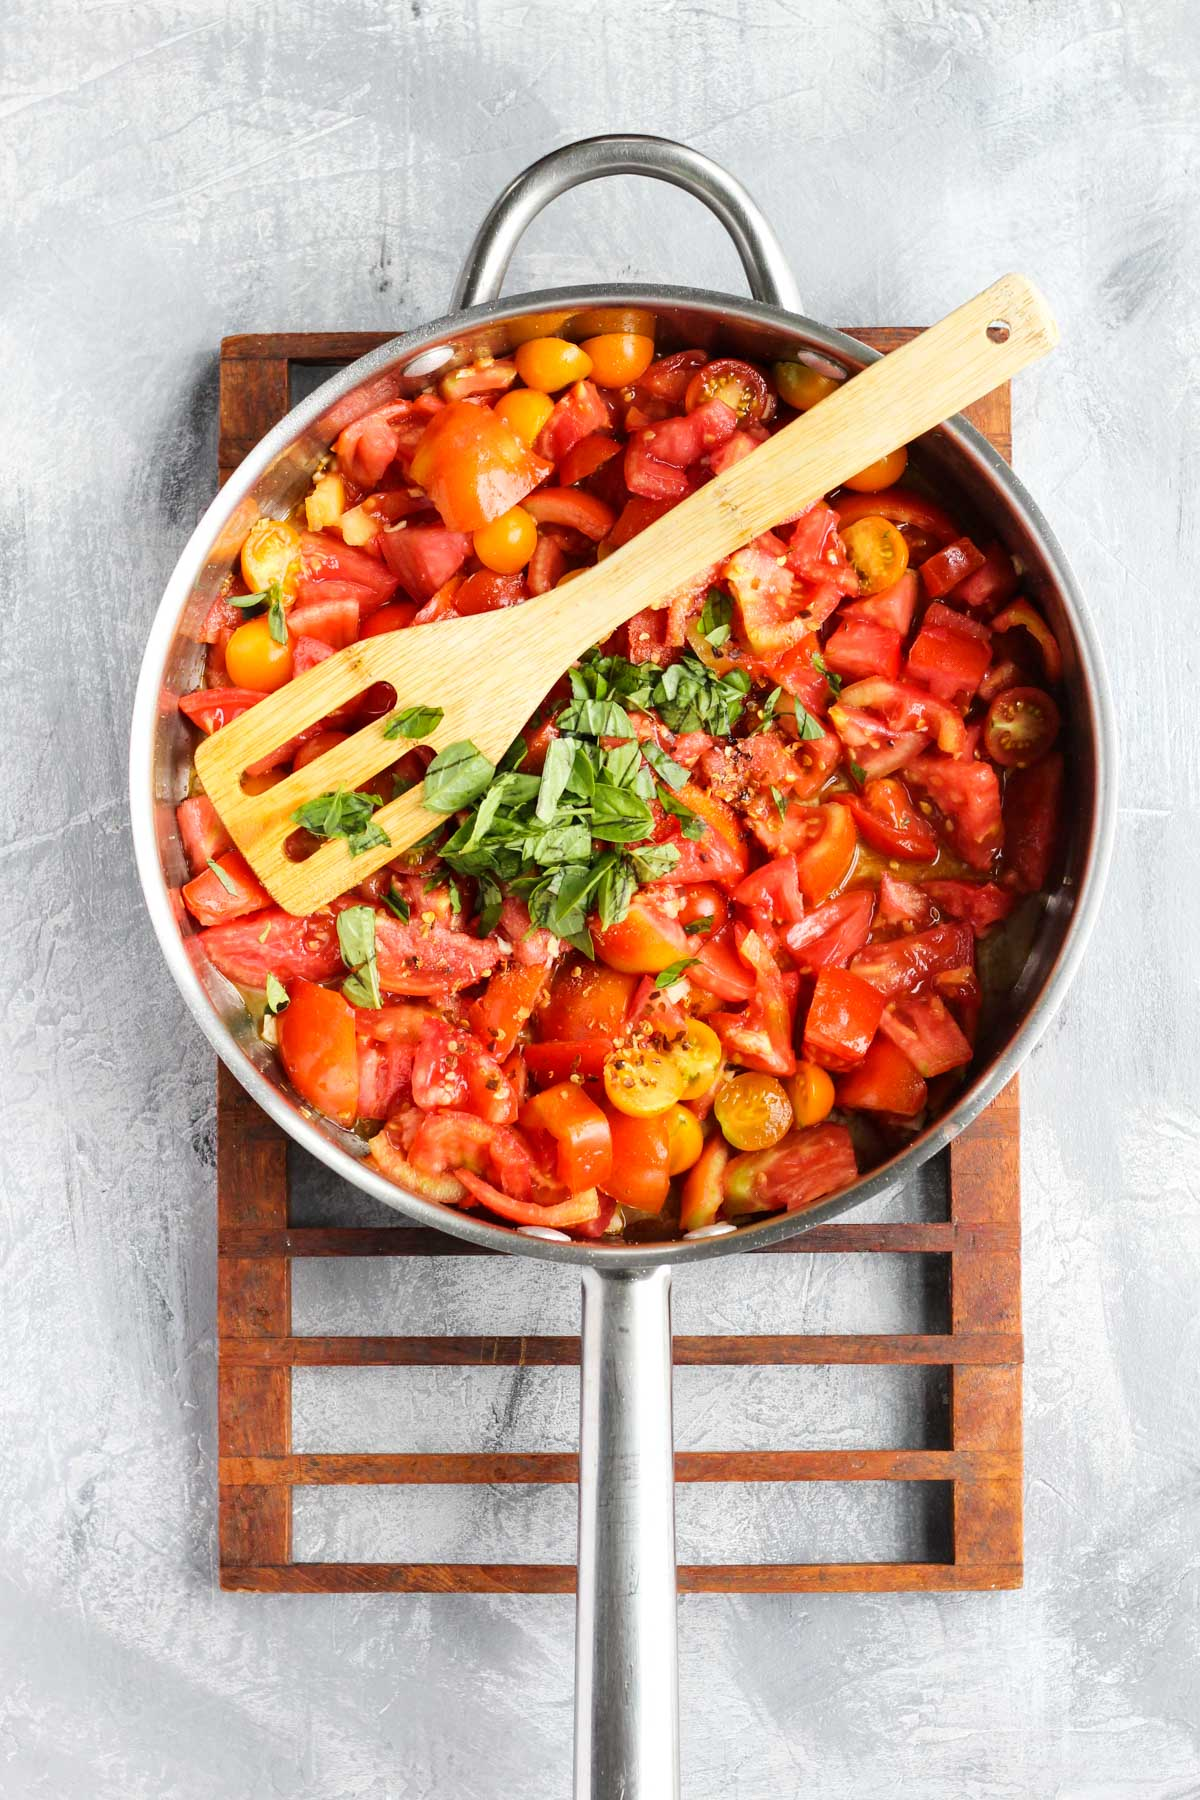 Large pan with tomatoes, herbs, and spices.